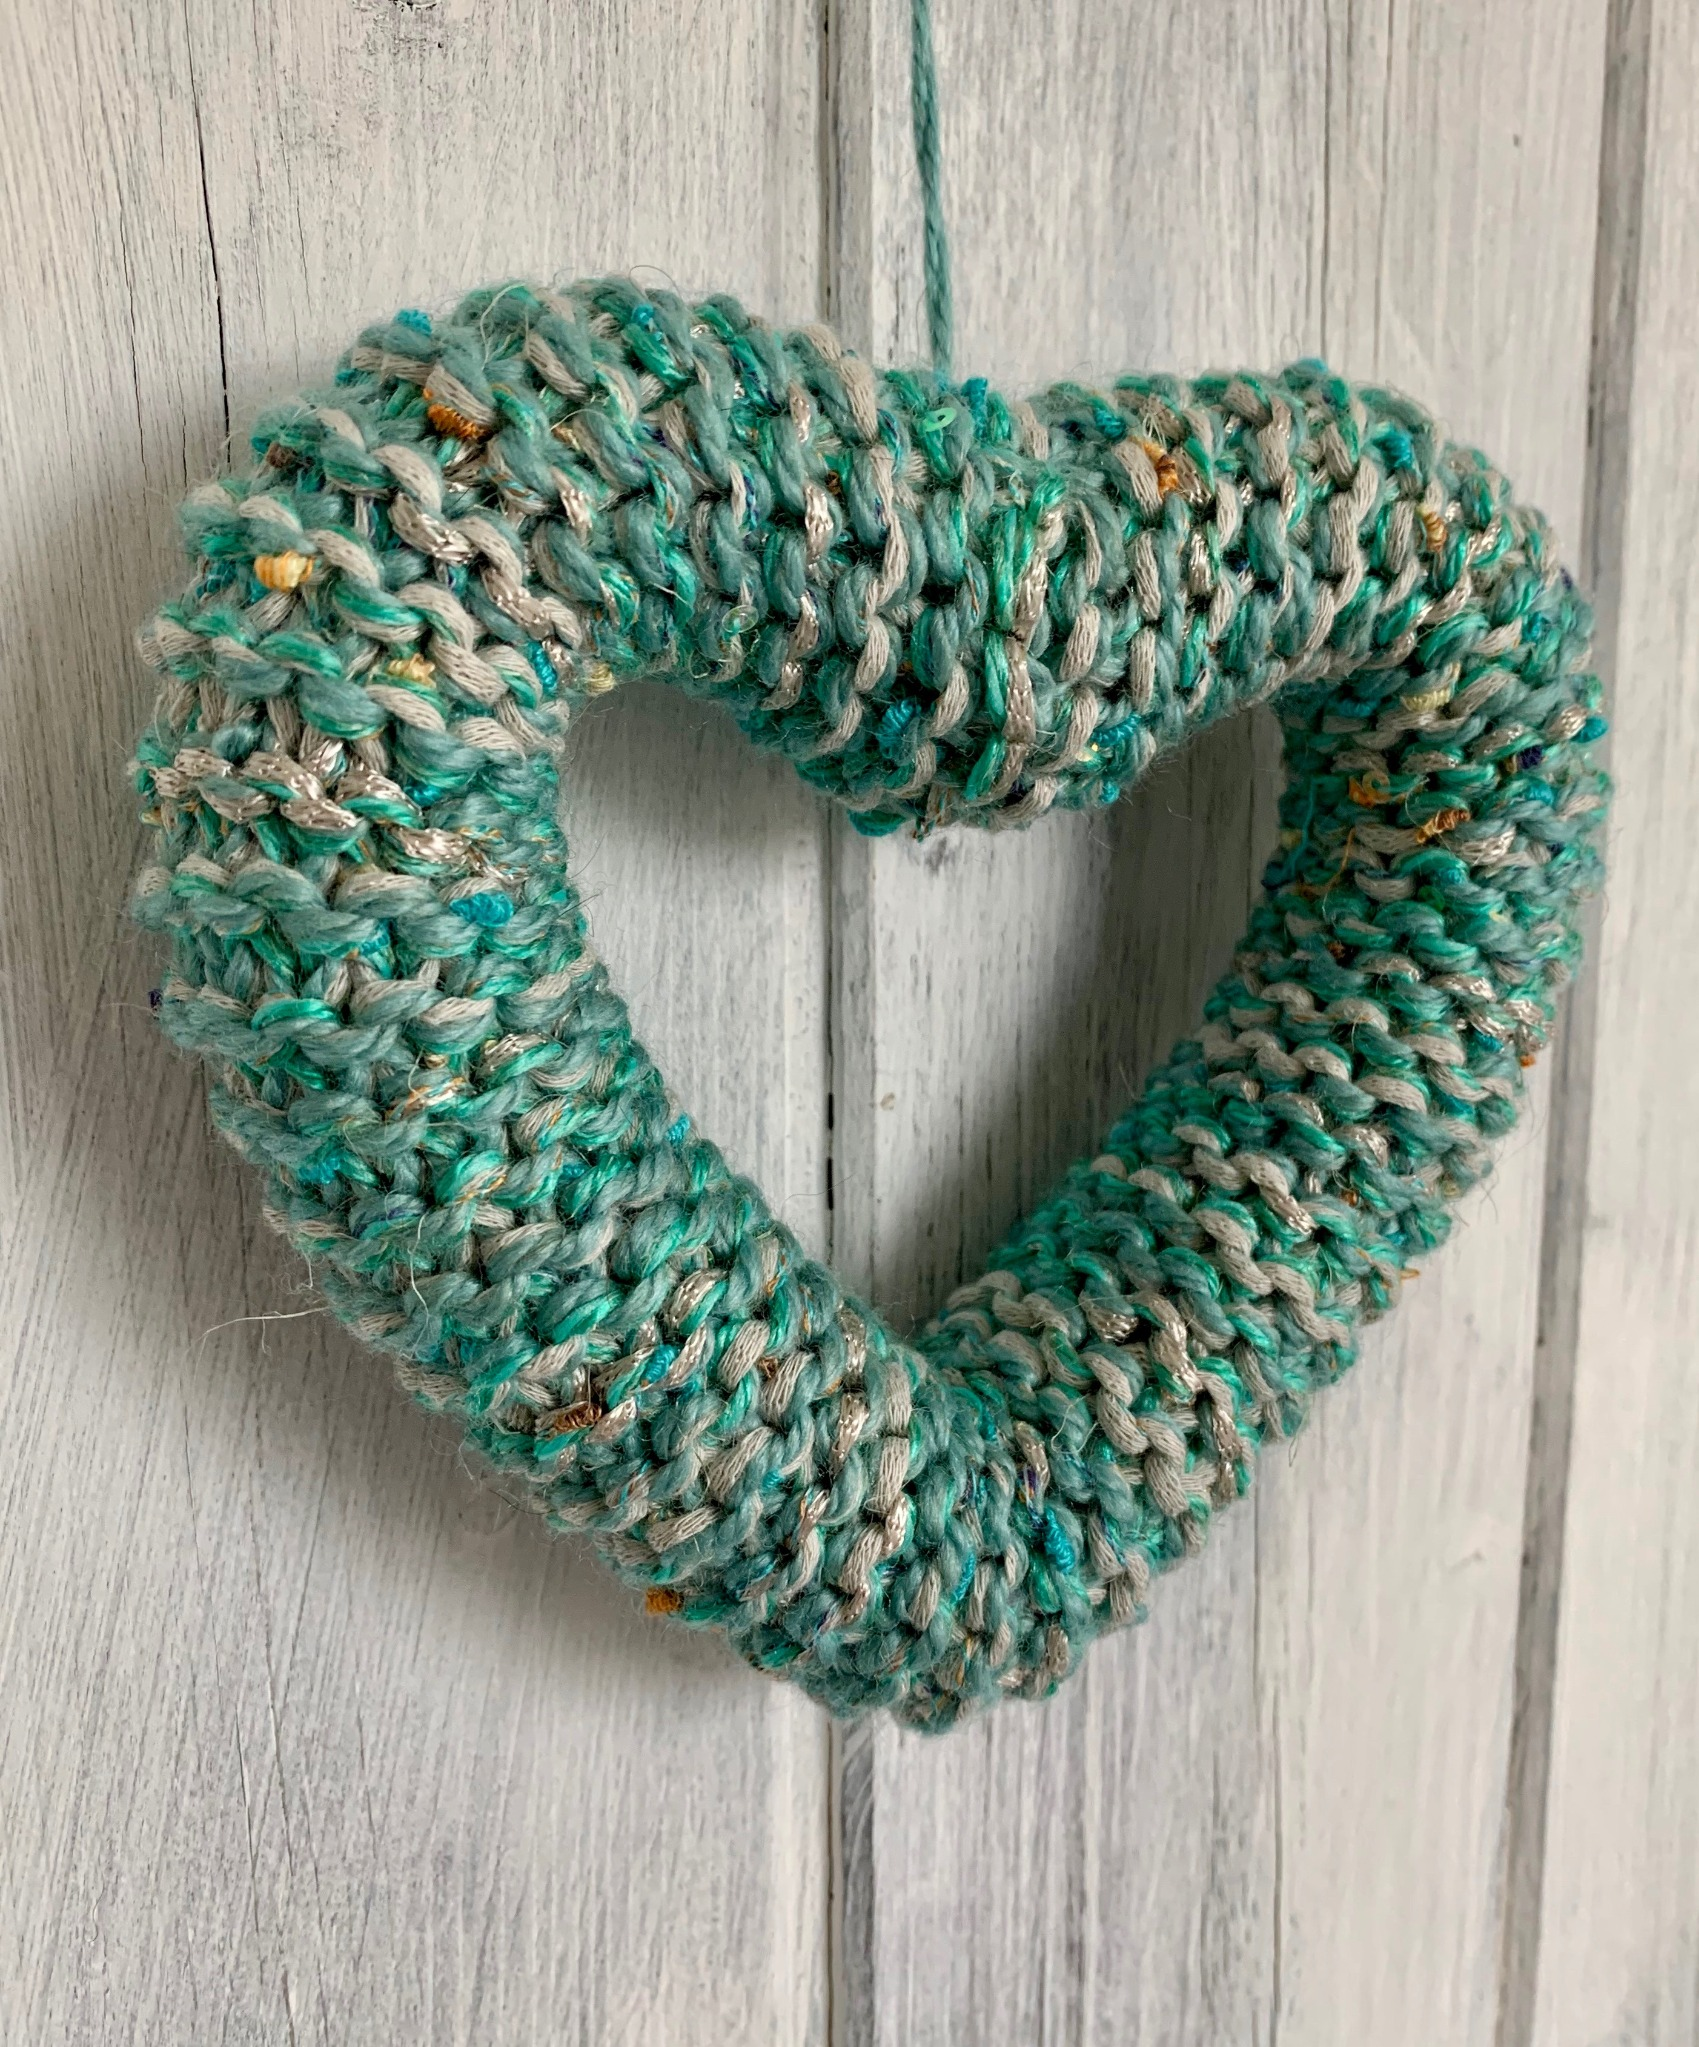 Hand Knitted Hearts Mixed Blues Collection